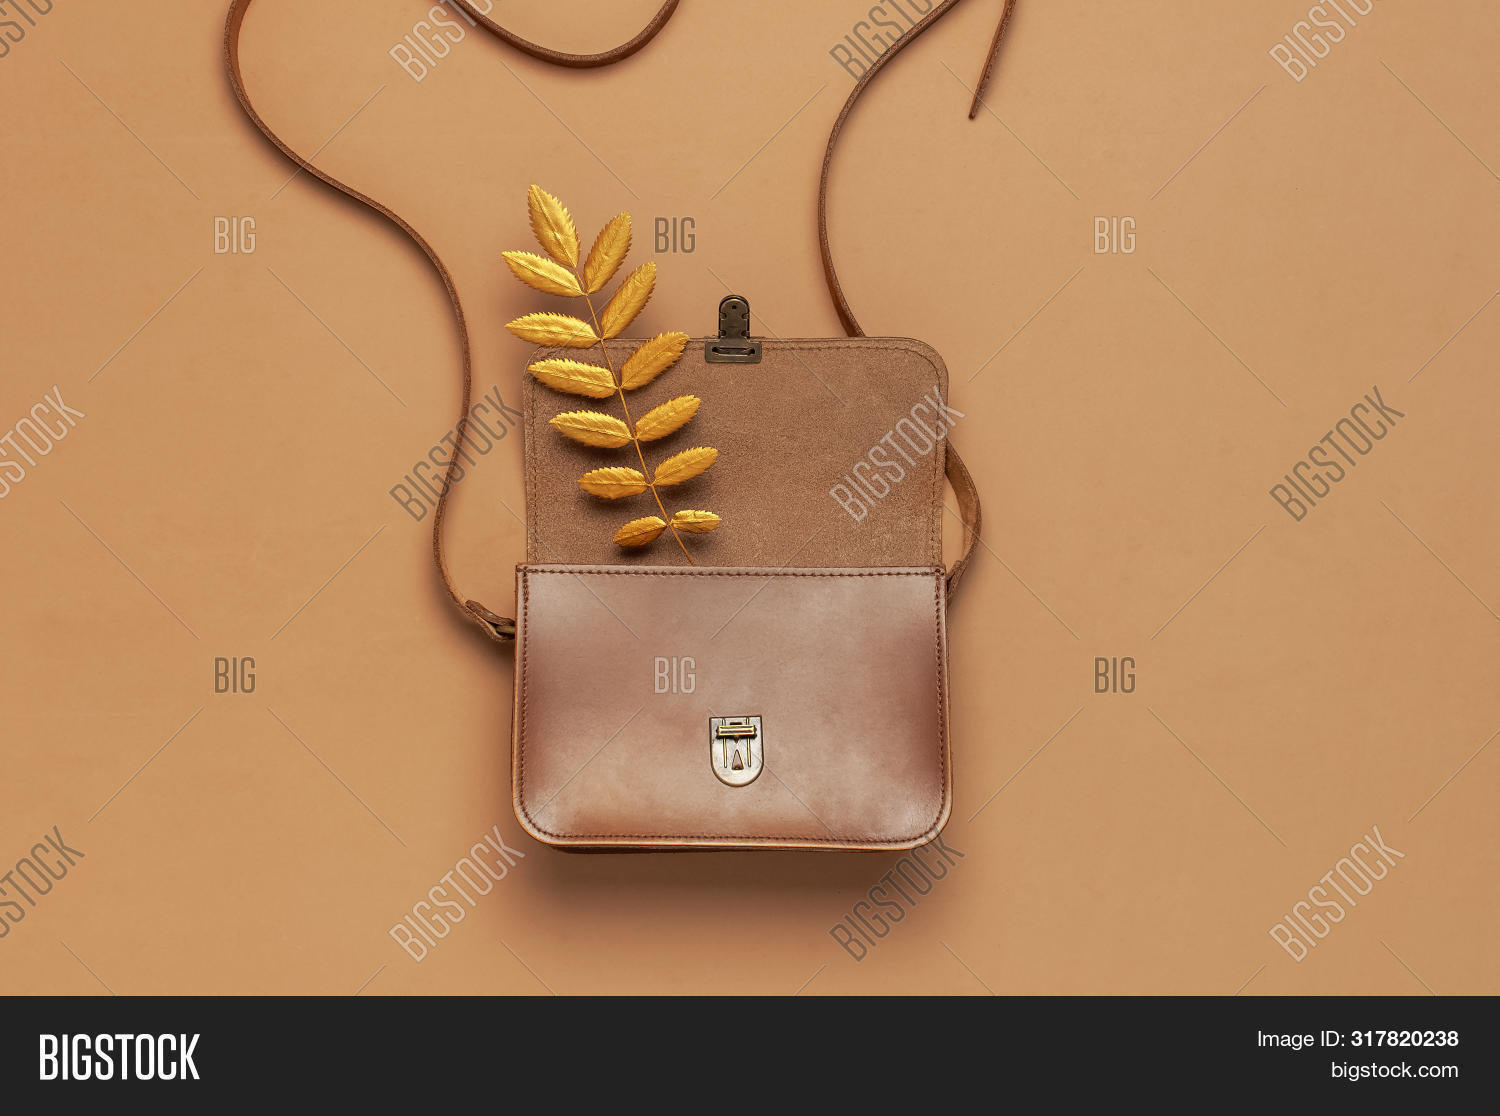 Brown leather women bag and golden autumn leaf on brown background top view flat lay copy space. Fashionable women's accessories. Autumn Fashion Concept. Stylish Lady Clothes, fall Leaves.